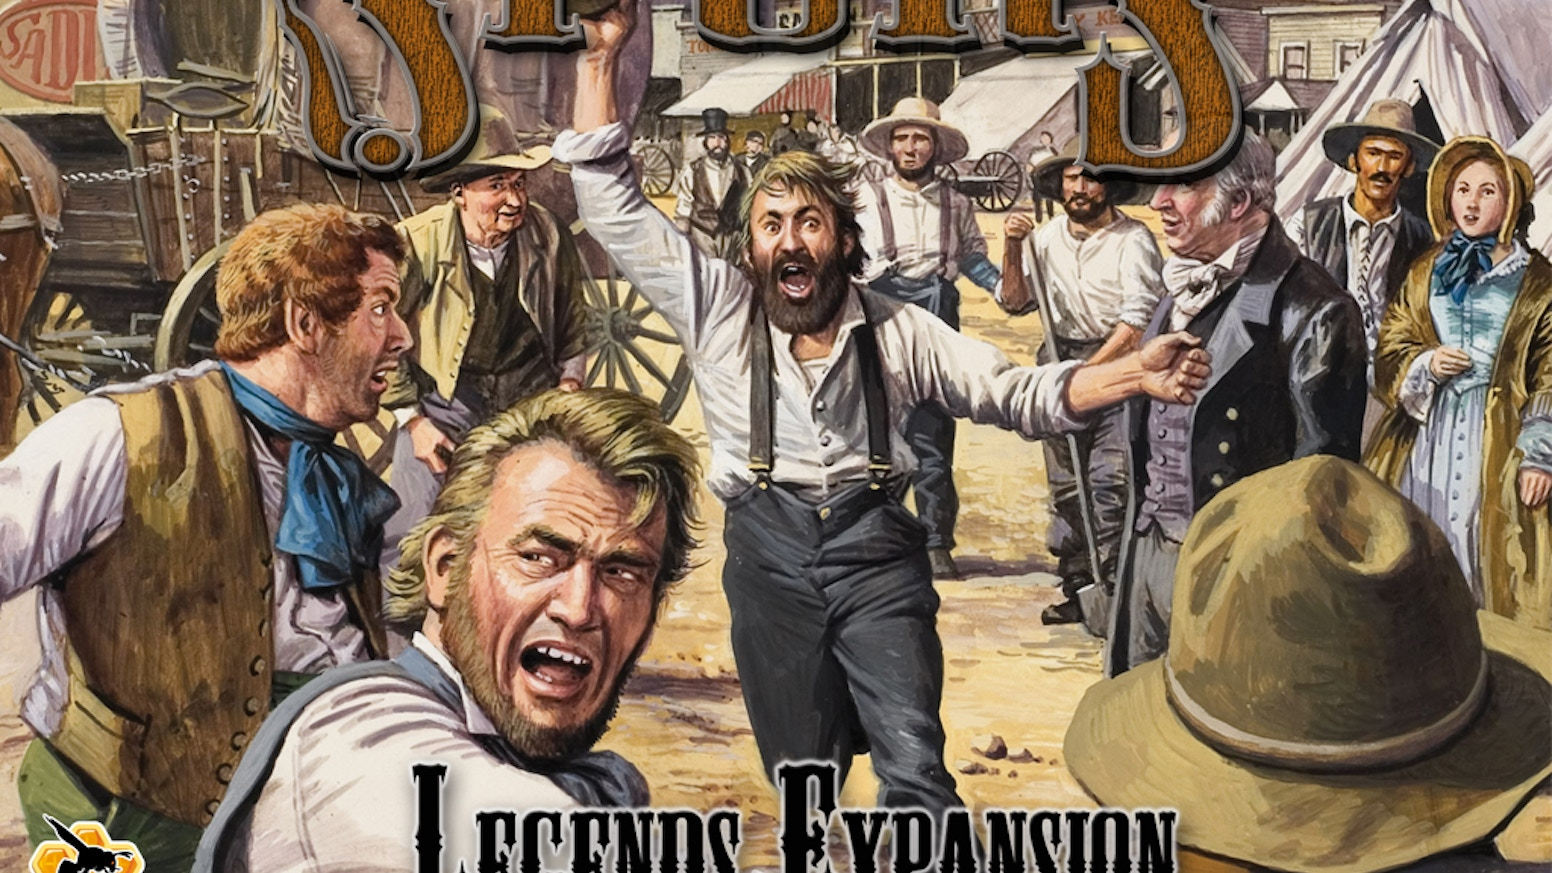 The Spurs Legends Expansion is a series of new adventure tiles and mini games for Spurs: A Tale in the Old West.